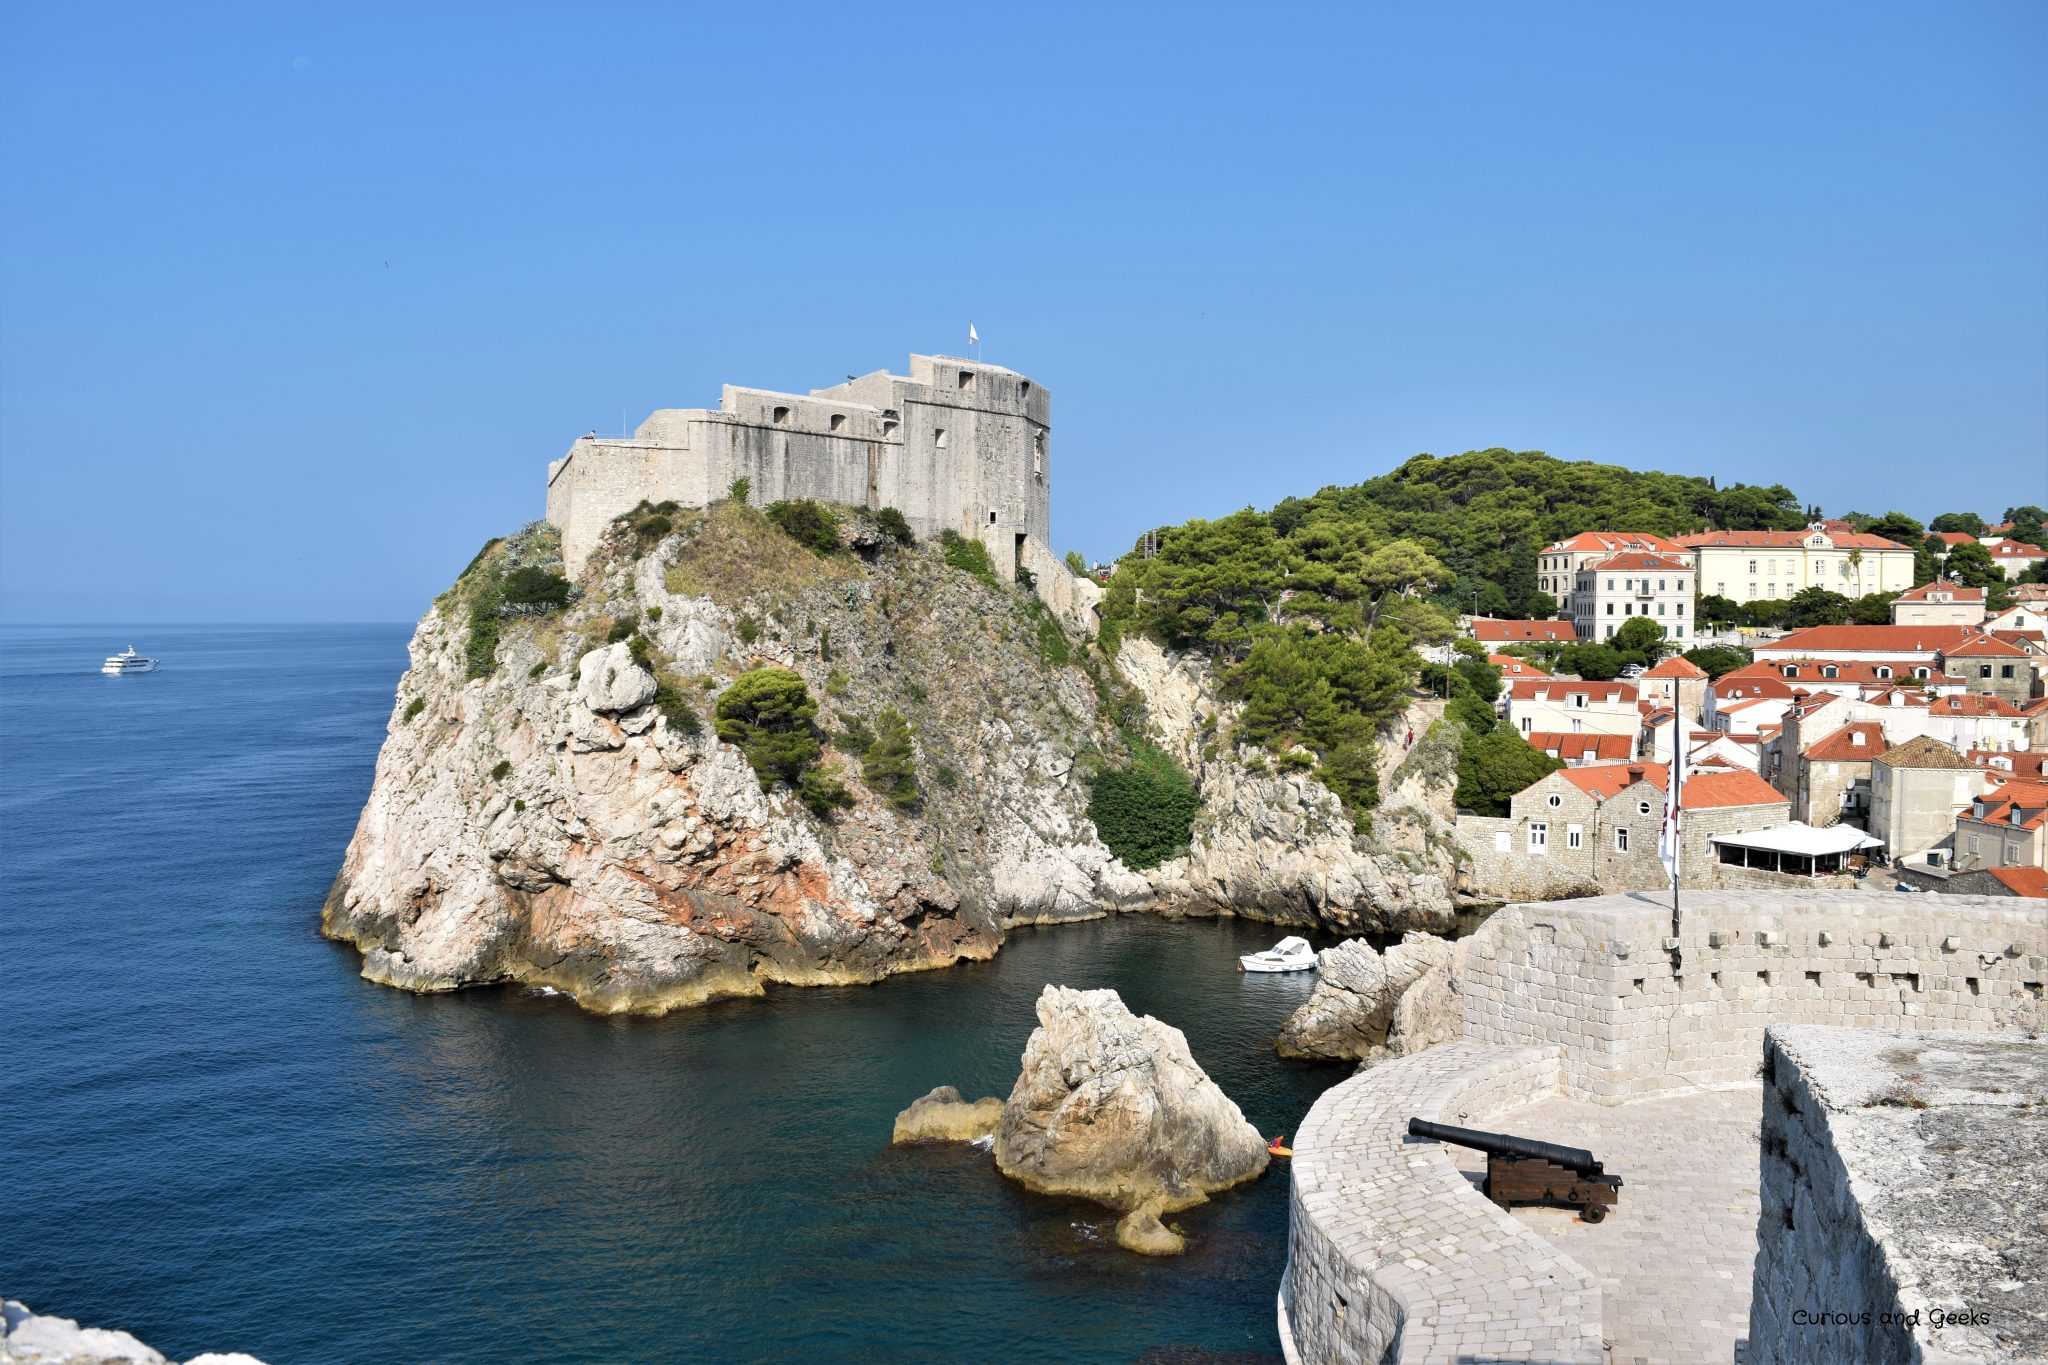 View from the city walls in DUbrovnik - filming location for s02e08 of Game of Thrones